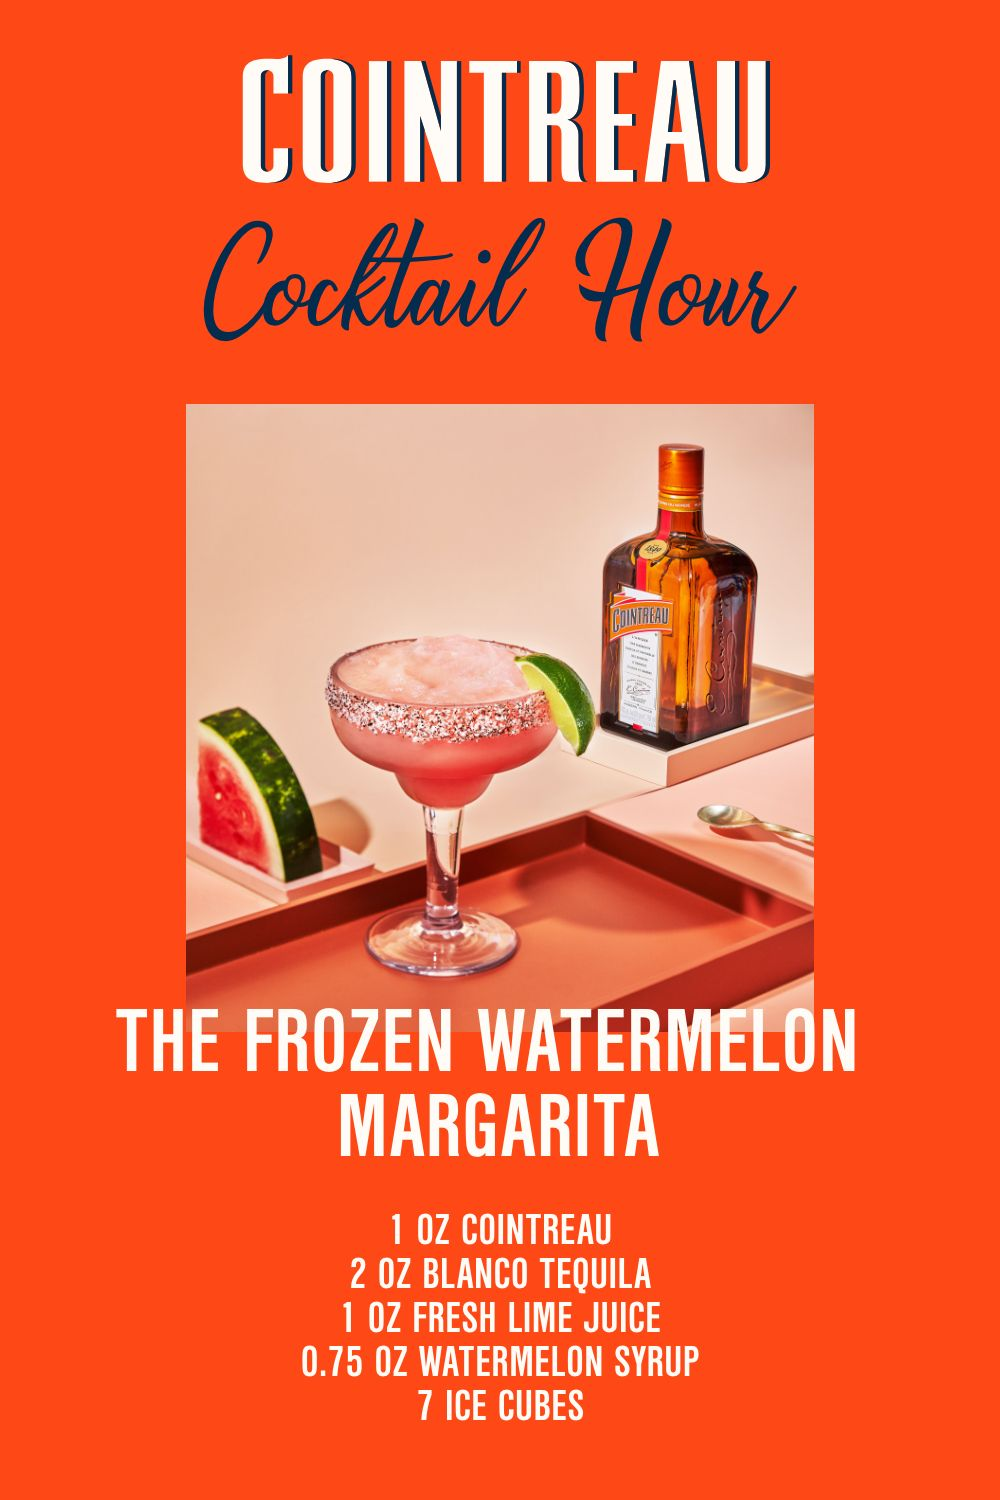 Cointreau Cocktail Hour In 2020 Alcohol Drink Recipes Drinks Alcohol Recipes Cocktail Drinks Recipes